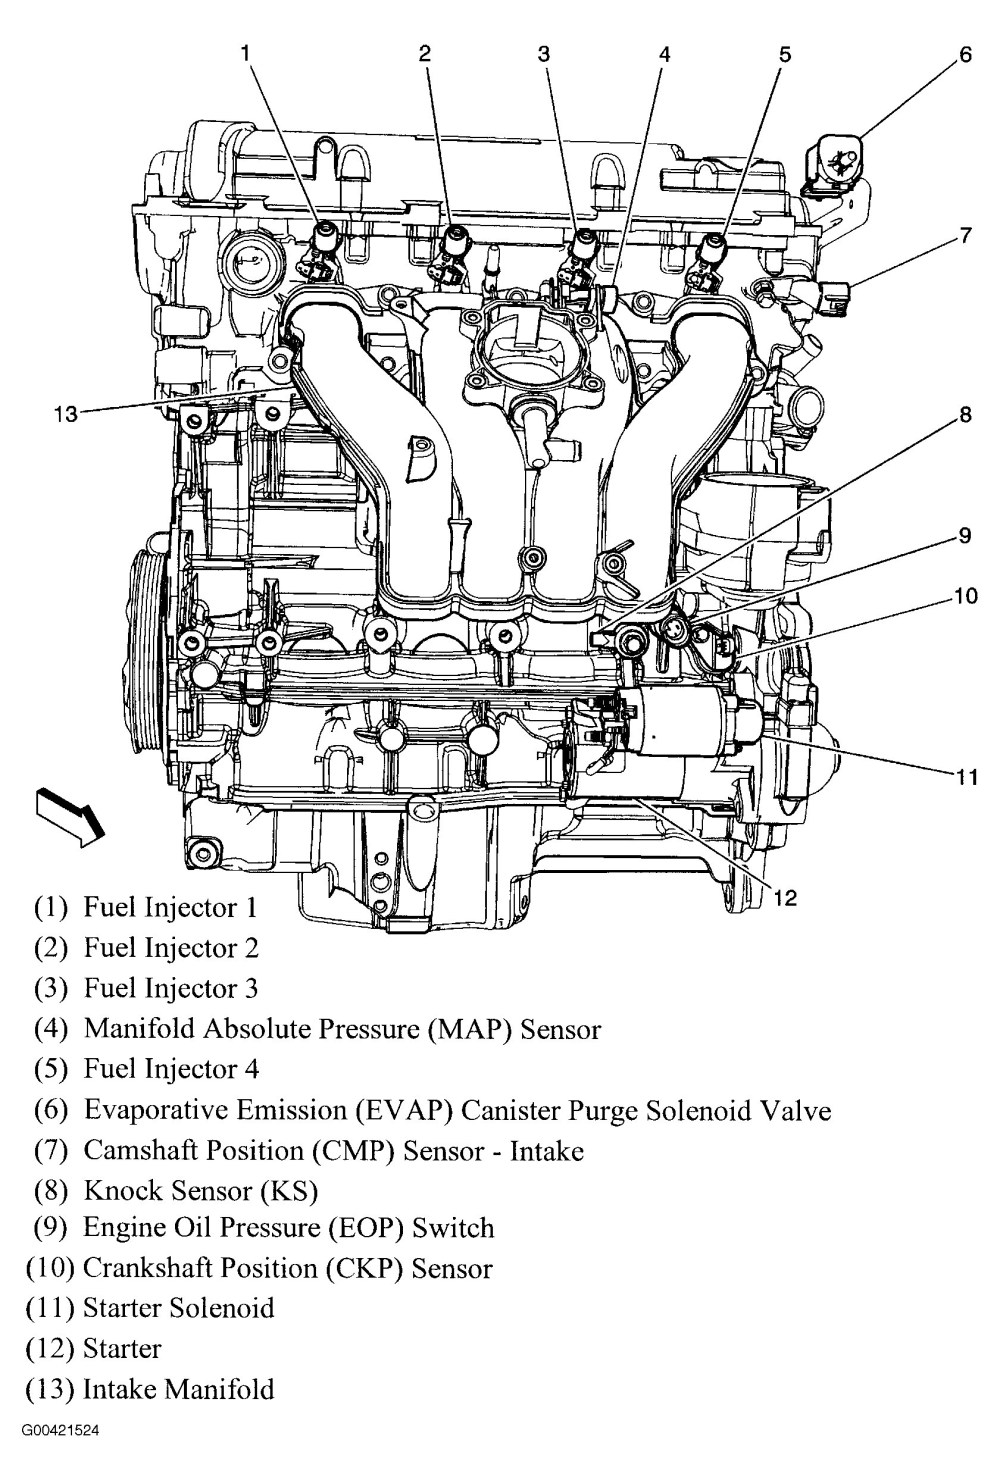 medium resolution of 1999 ford ranger 3 0 engine diagram engine car parts and component 98 jetta vr6 engine diagram engine car parts and component diagram